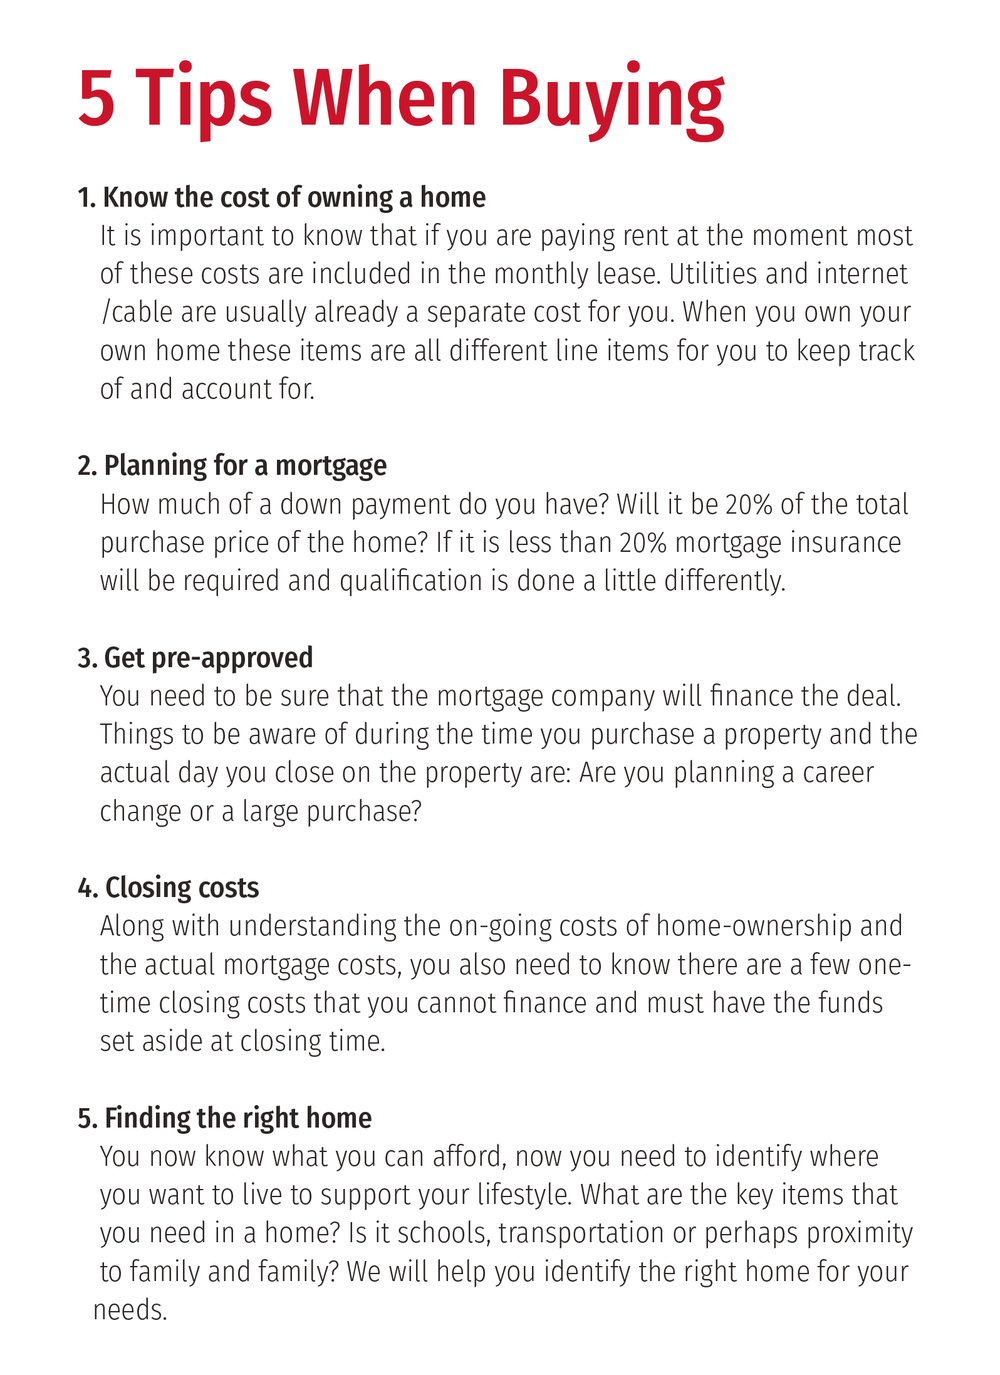 Tobia_Homes_Presentation-Digital_Download-BUYERS-0618_5-Tips.png